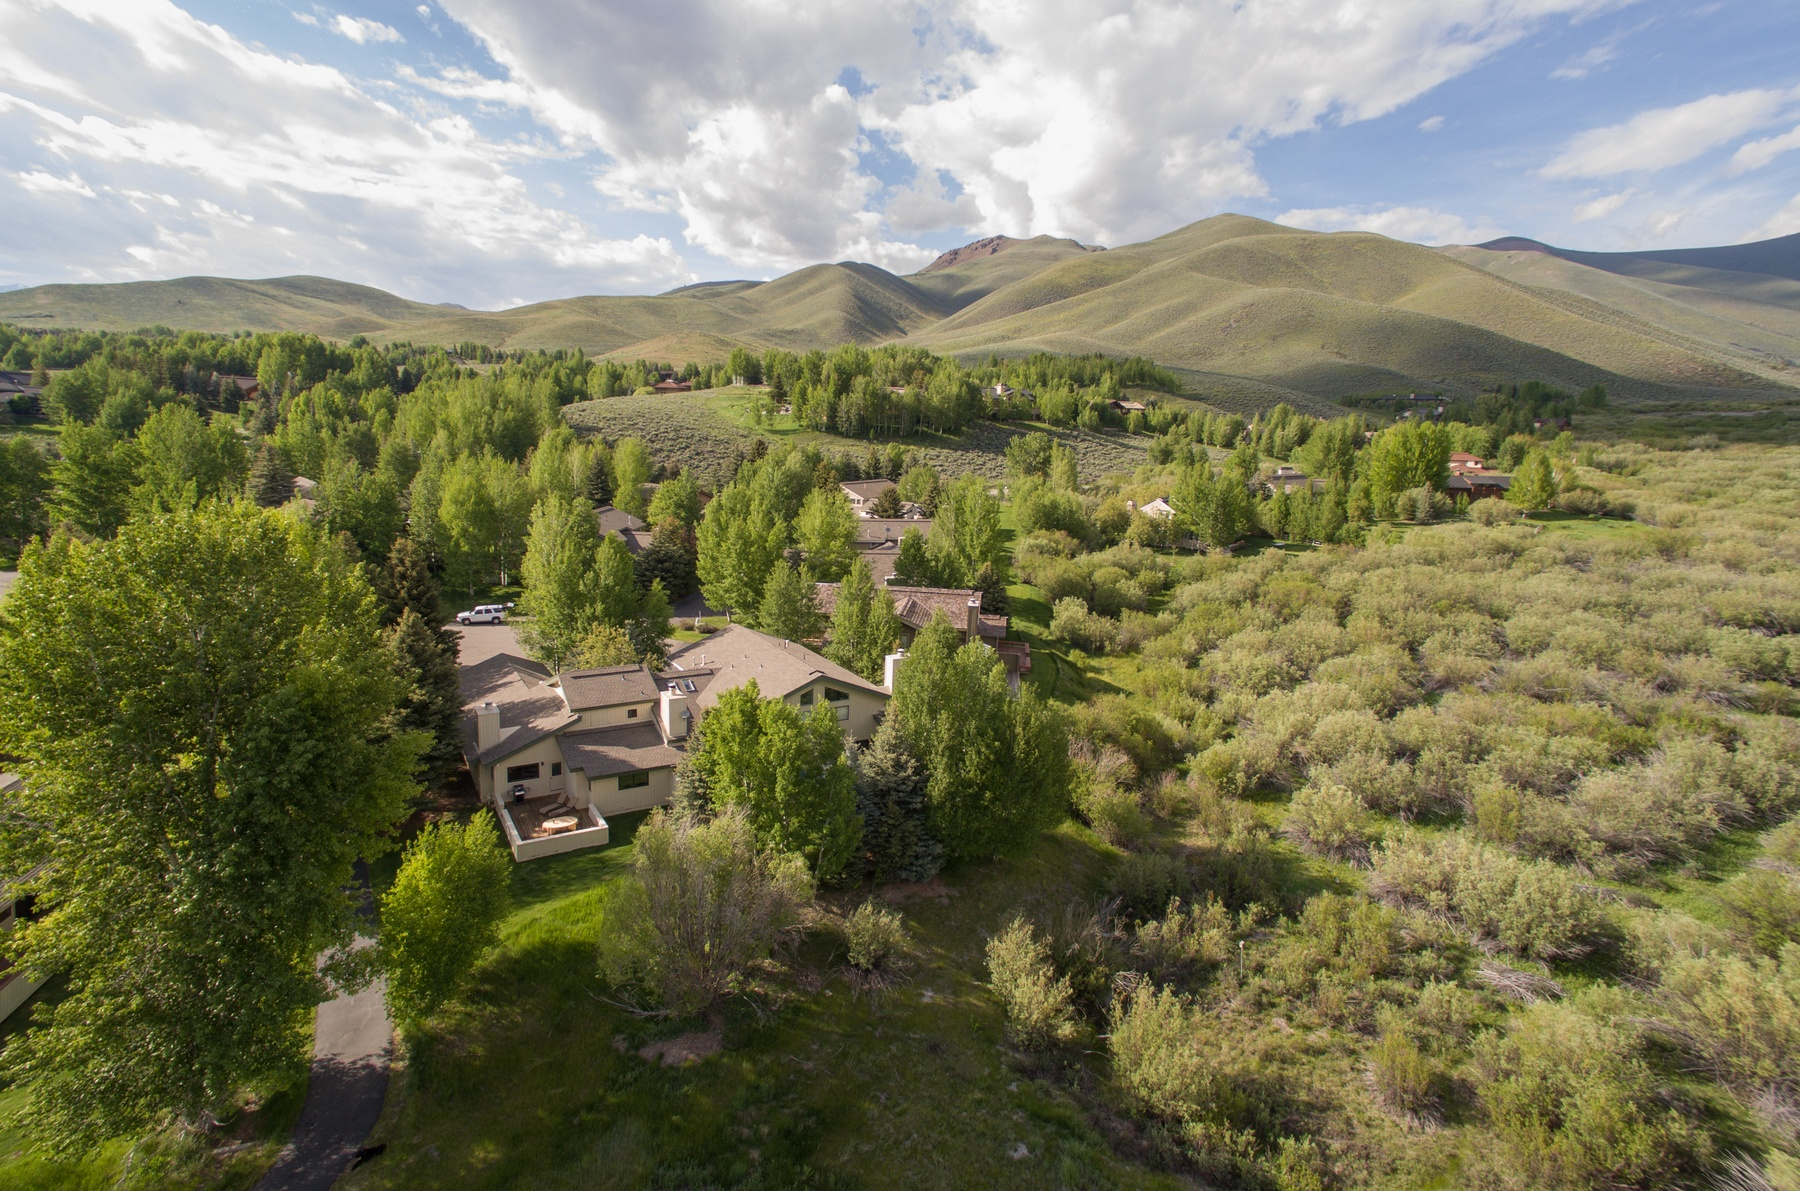 Townhouse for Sale at Great Space and Views in Elkhorn 106 Dandelion East Elkhorn, Sun Valley, Idaho, 83353 United States